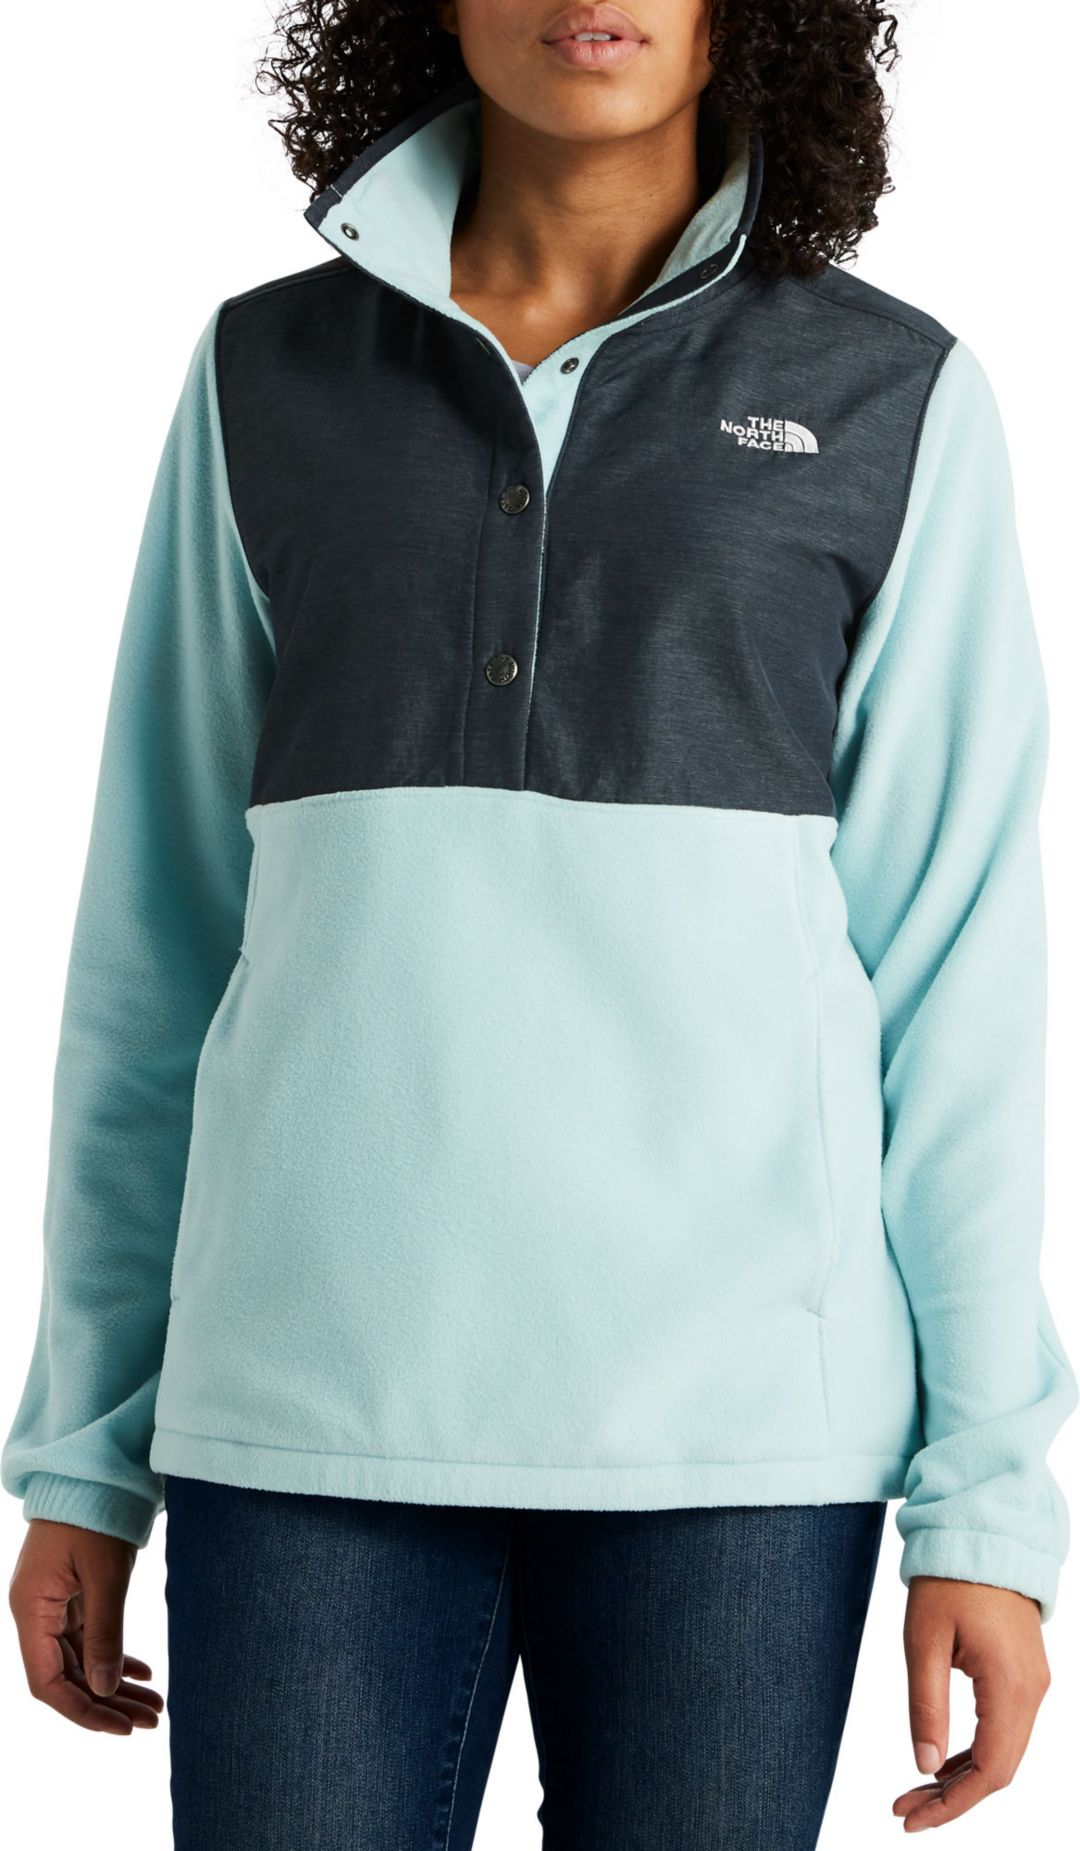 separation shoes 62365 9e19d The North Face Women's Snap It Fleece Pullover